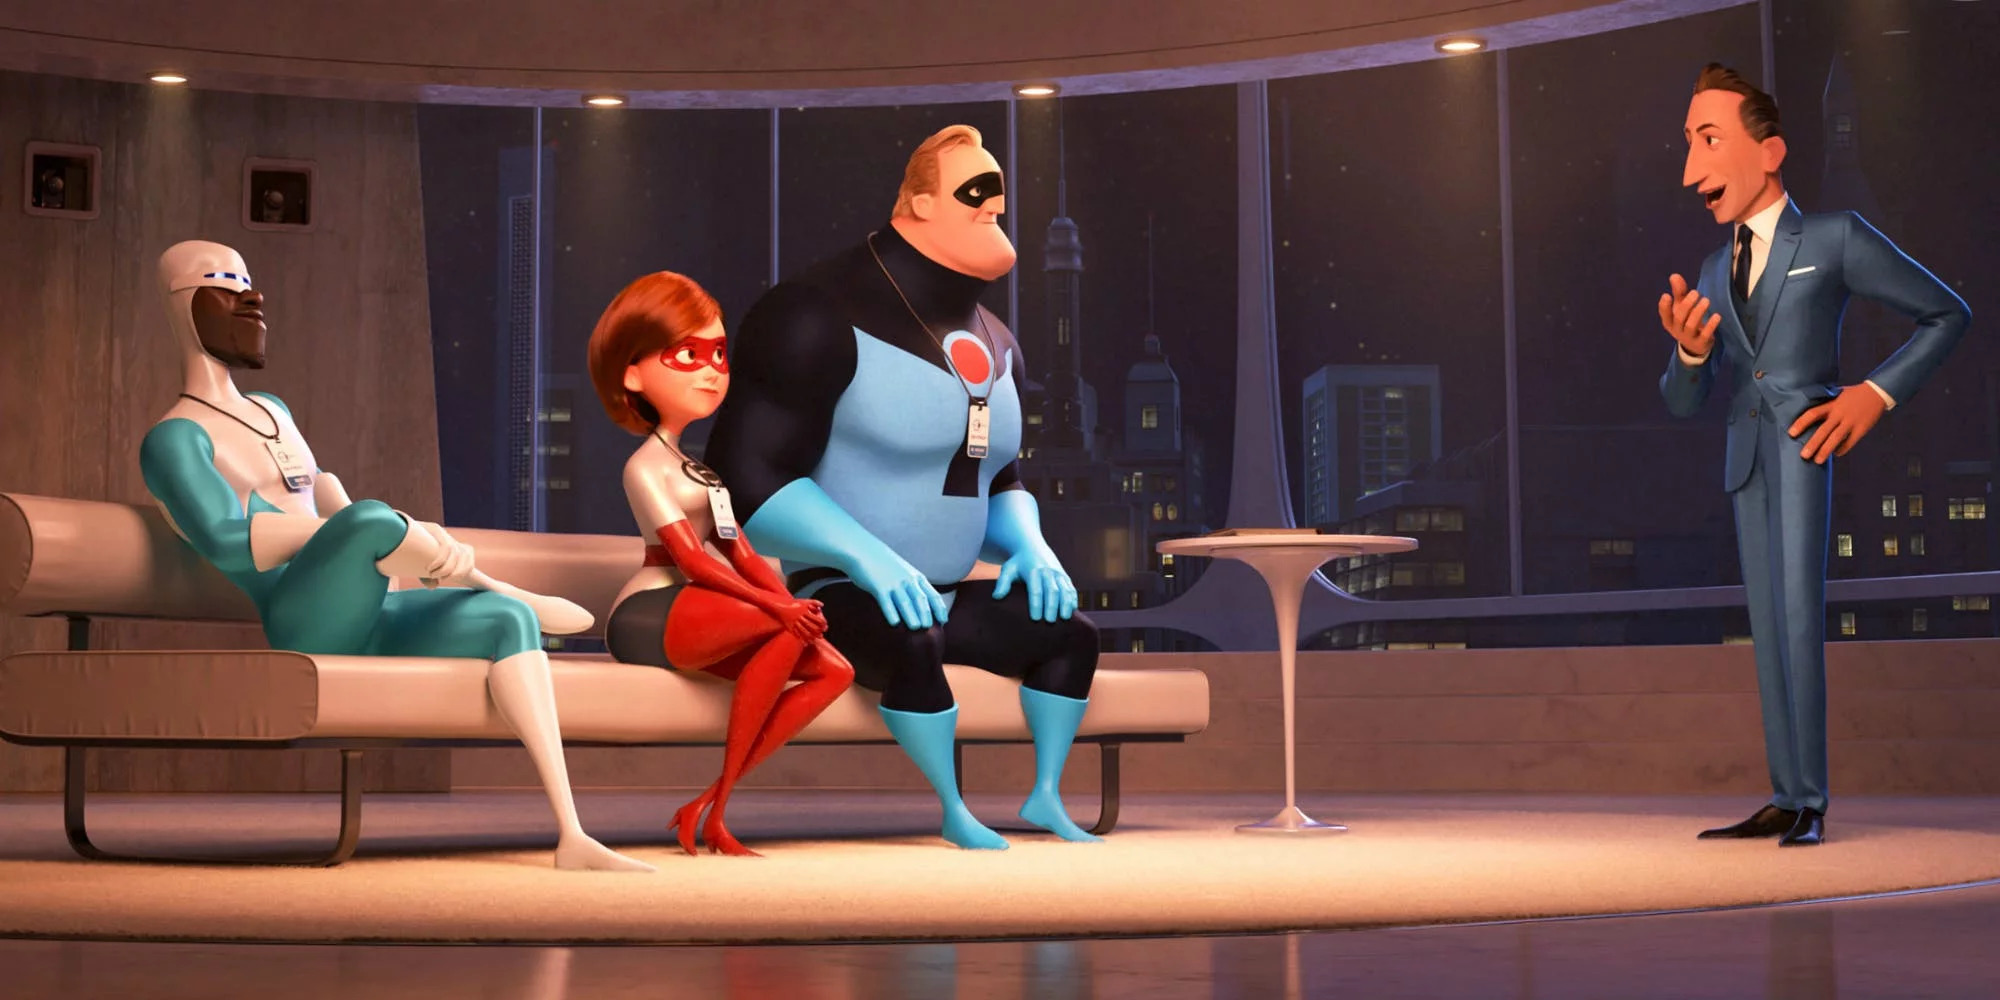 incredibles 2 movie still